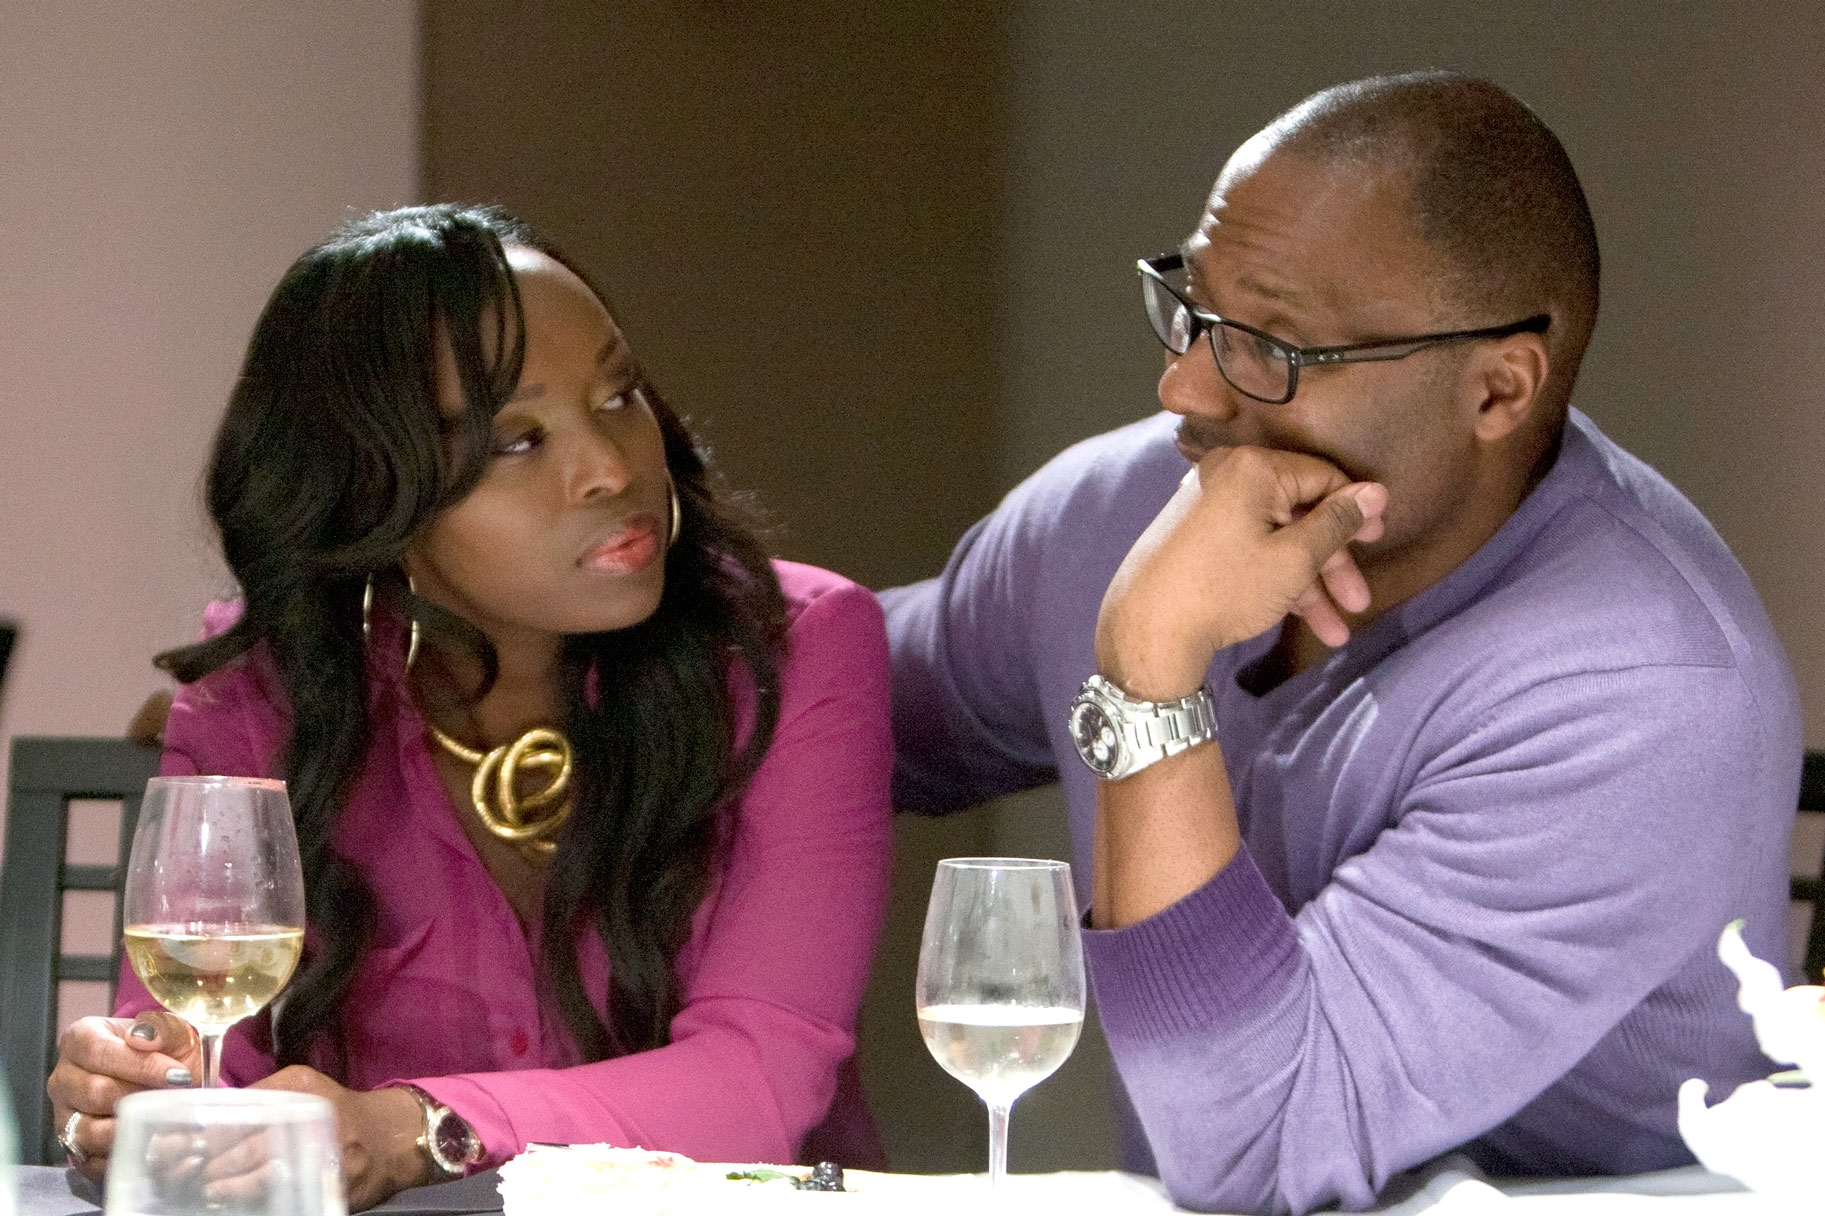 Quad Webb, Dr. Gregory Lunceford on Married to Medicine